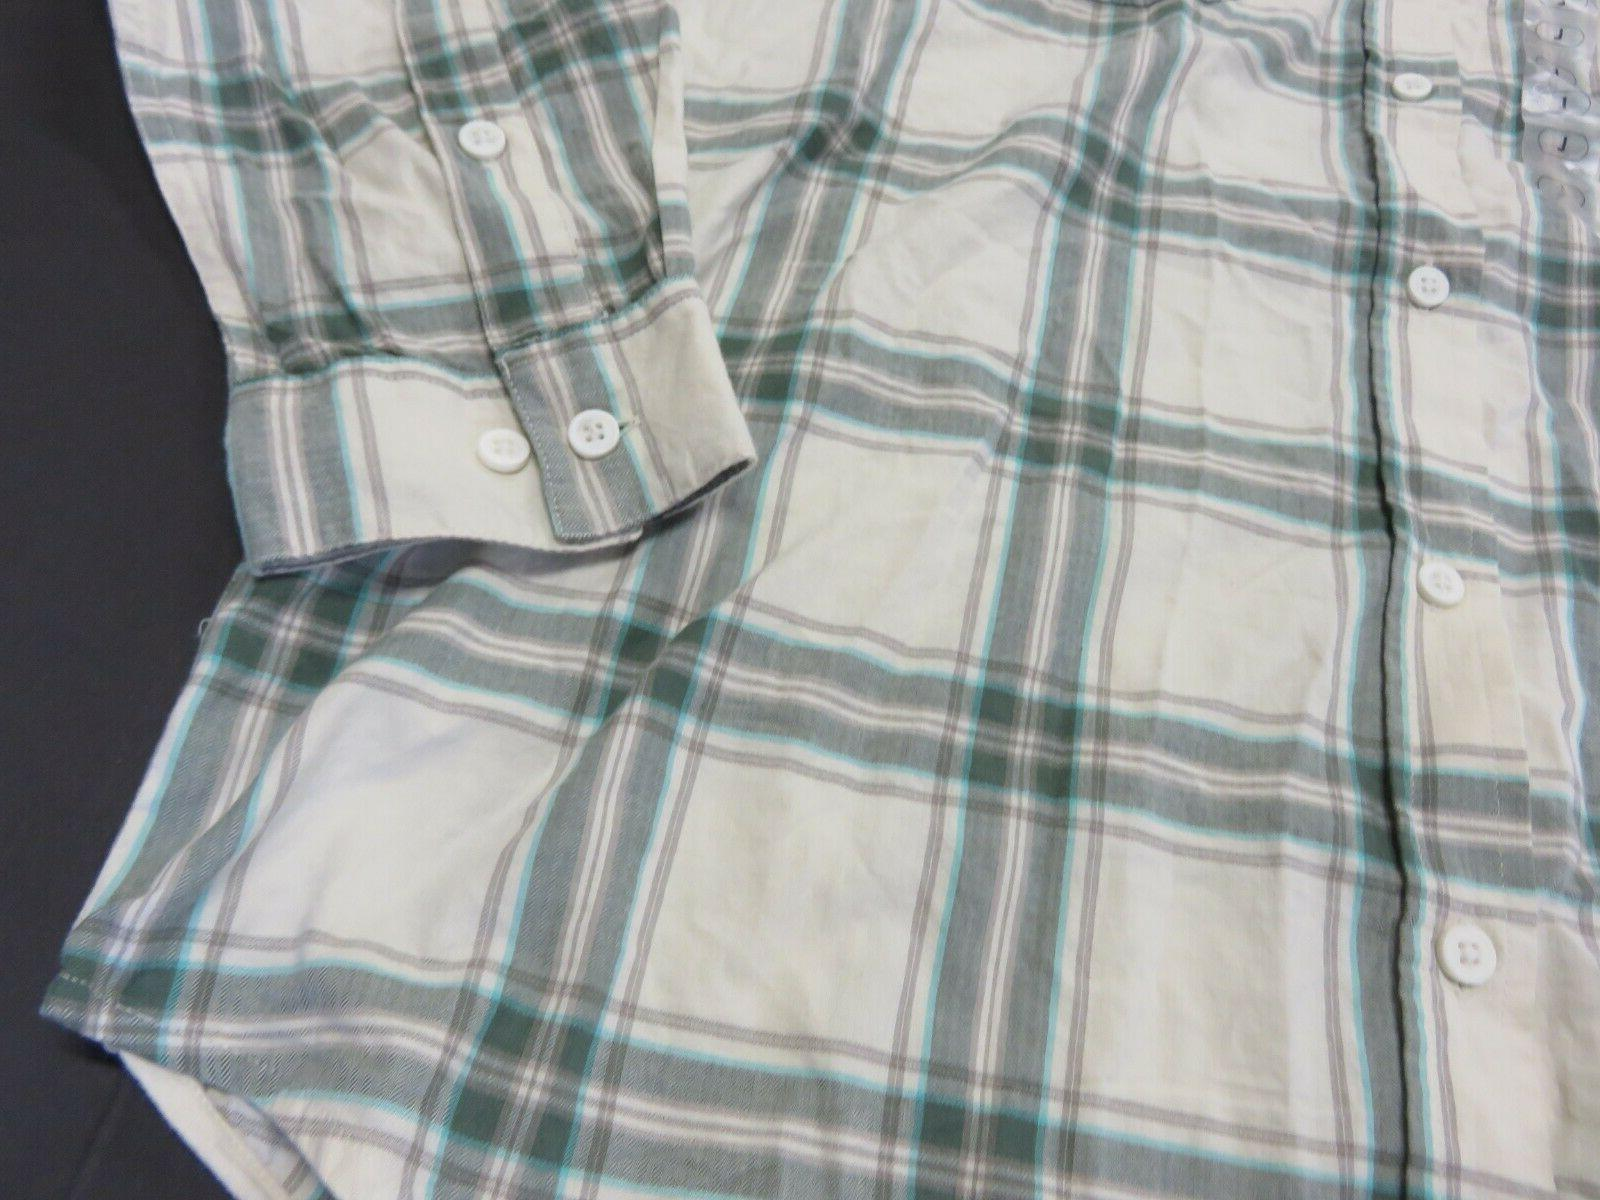 NWT Flannel Button Up Sleeve Shirt Men's